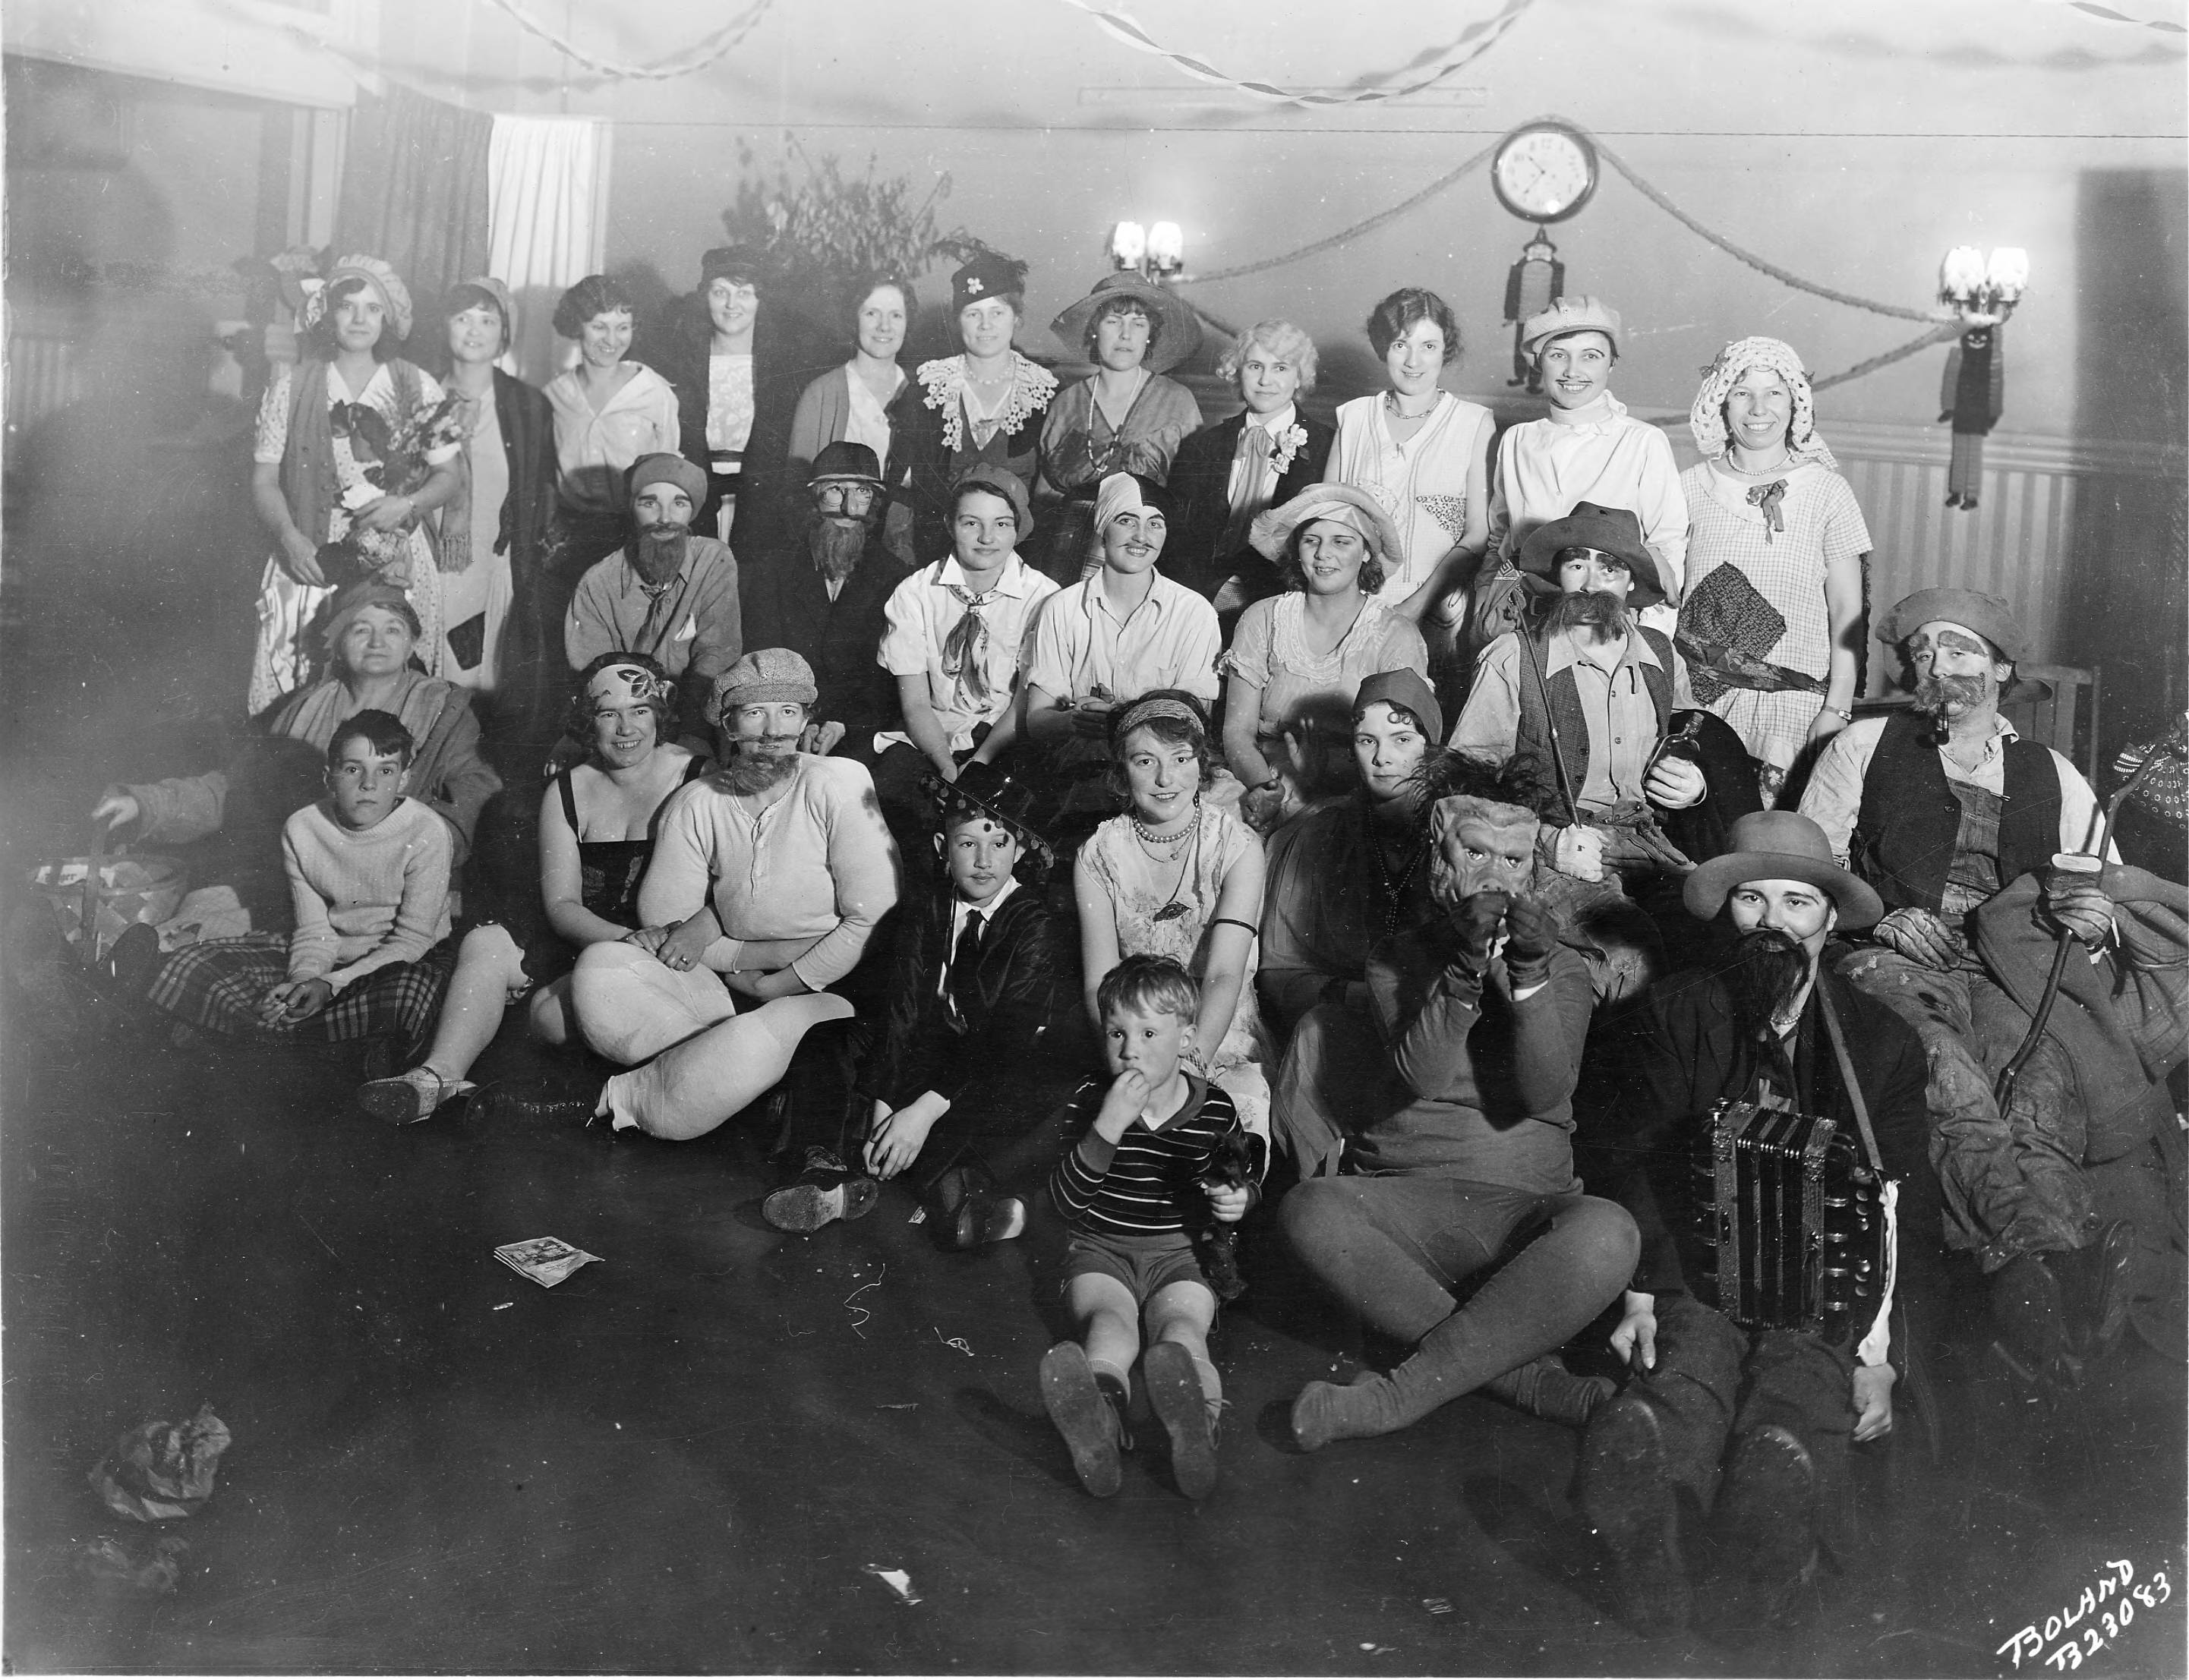 These telephone operators and their families enjoyed a Halloween party in October of 1930. Costumes of gold miners, hobos, strongmen, and wandering musicians were on display. Names of those in attendance were not provided.